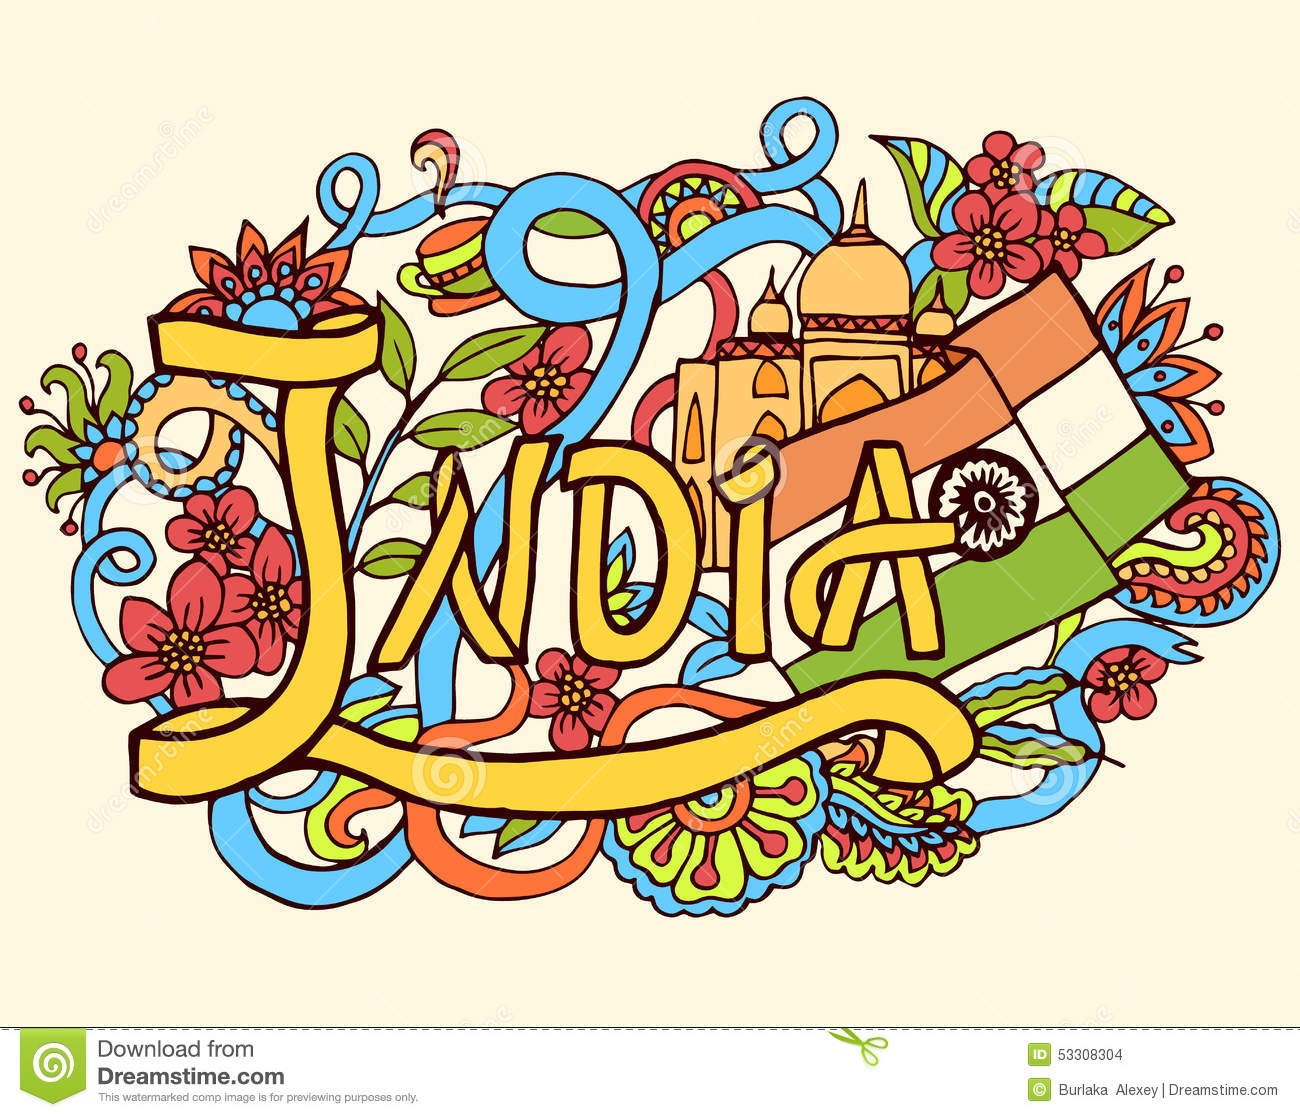 India Hand Lettering And Doodles Elements Background Auto Garmin Gt21 Th Transducer Wire Diagram